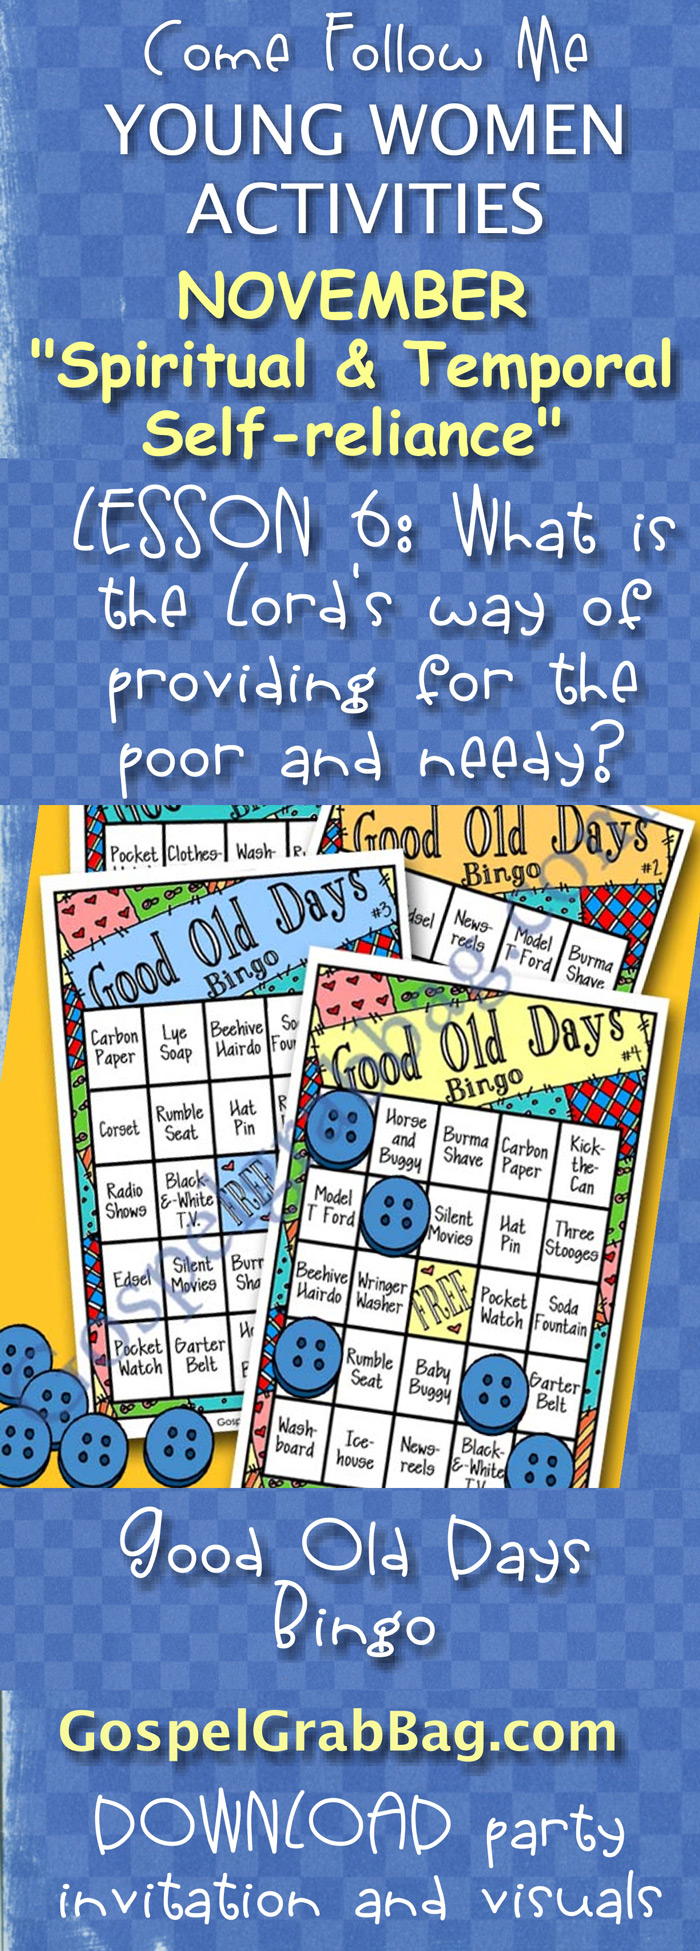 """SERVING SENIORS: """"ONCE UPON A TIME: KING AND QUEEN FOR A DAY"""" SENIOR PARTY – Activity for November """"Come, Follow Me"""" Young Women – Theme: """"Spiritual and Temporal Self-Reliance"""" – Lesson #6 Theme: What is the Lord's way of providing for the poor and the needy? - LDS - Christian lesson activities to download from gospelgrabbag.com"""